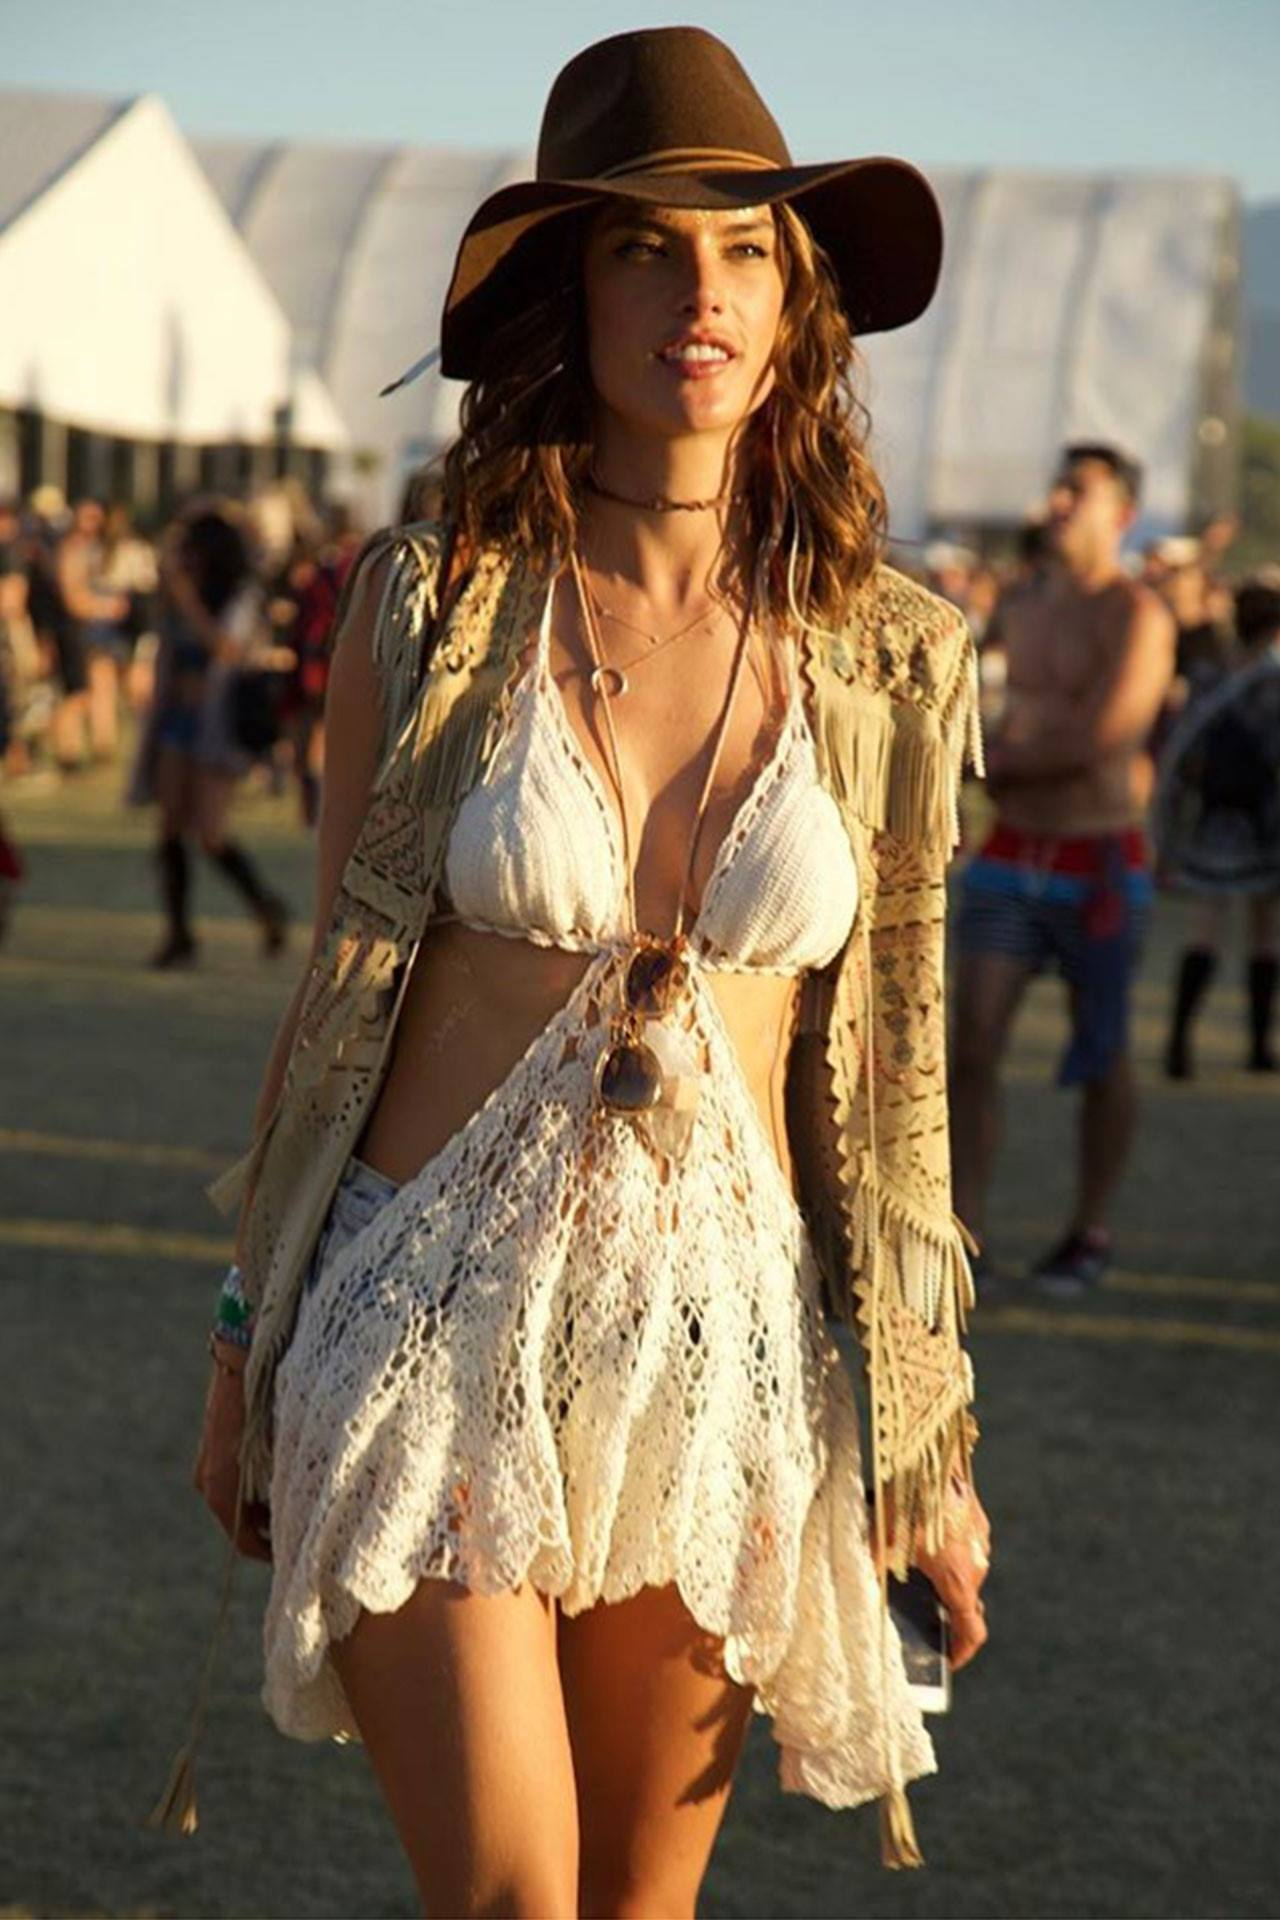 alessandra-ambrosio-at-coachella-2016-best-dressed